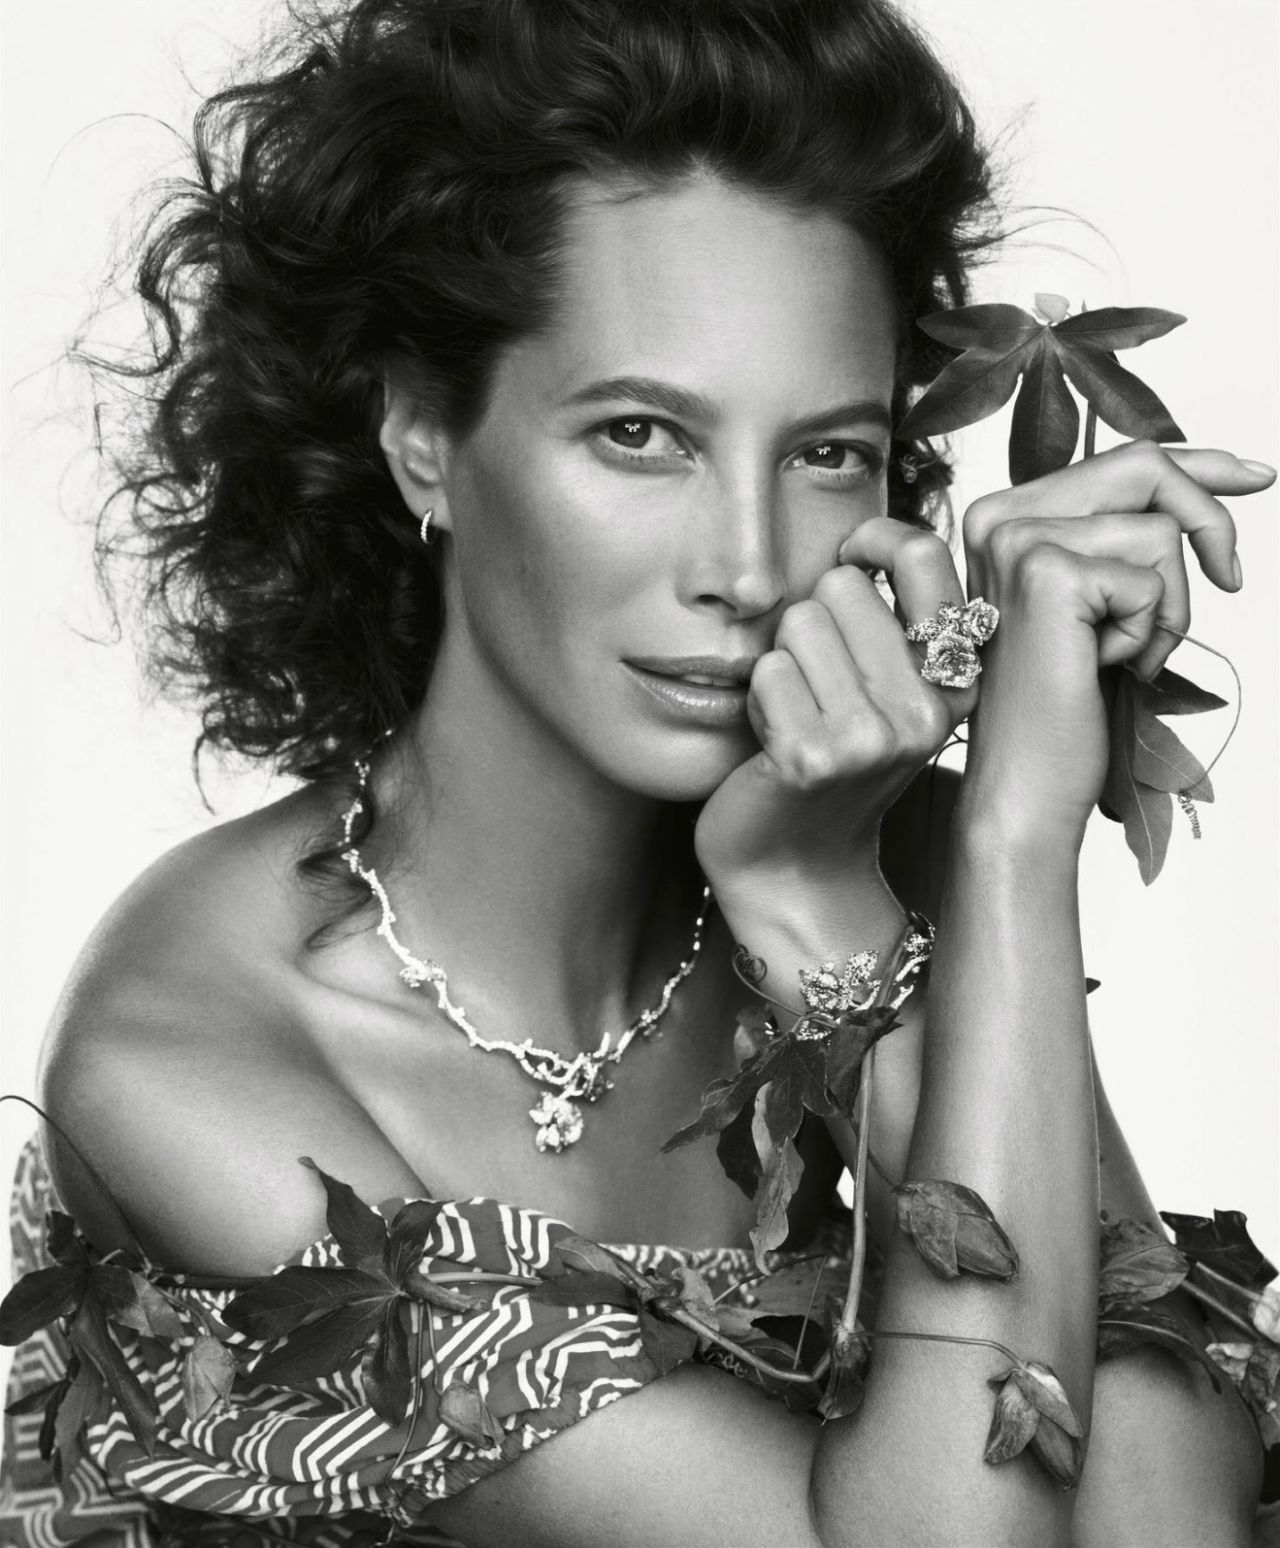 Christy Turlington - Photoshoot for Porter Magazine - Winter 2014